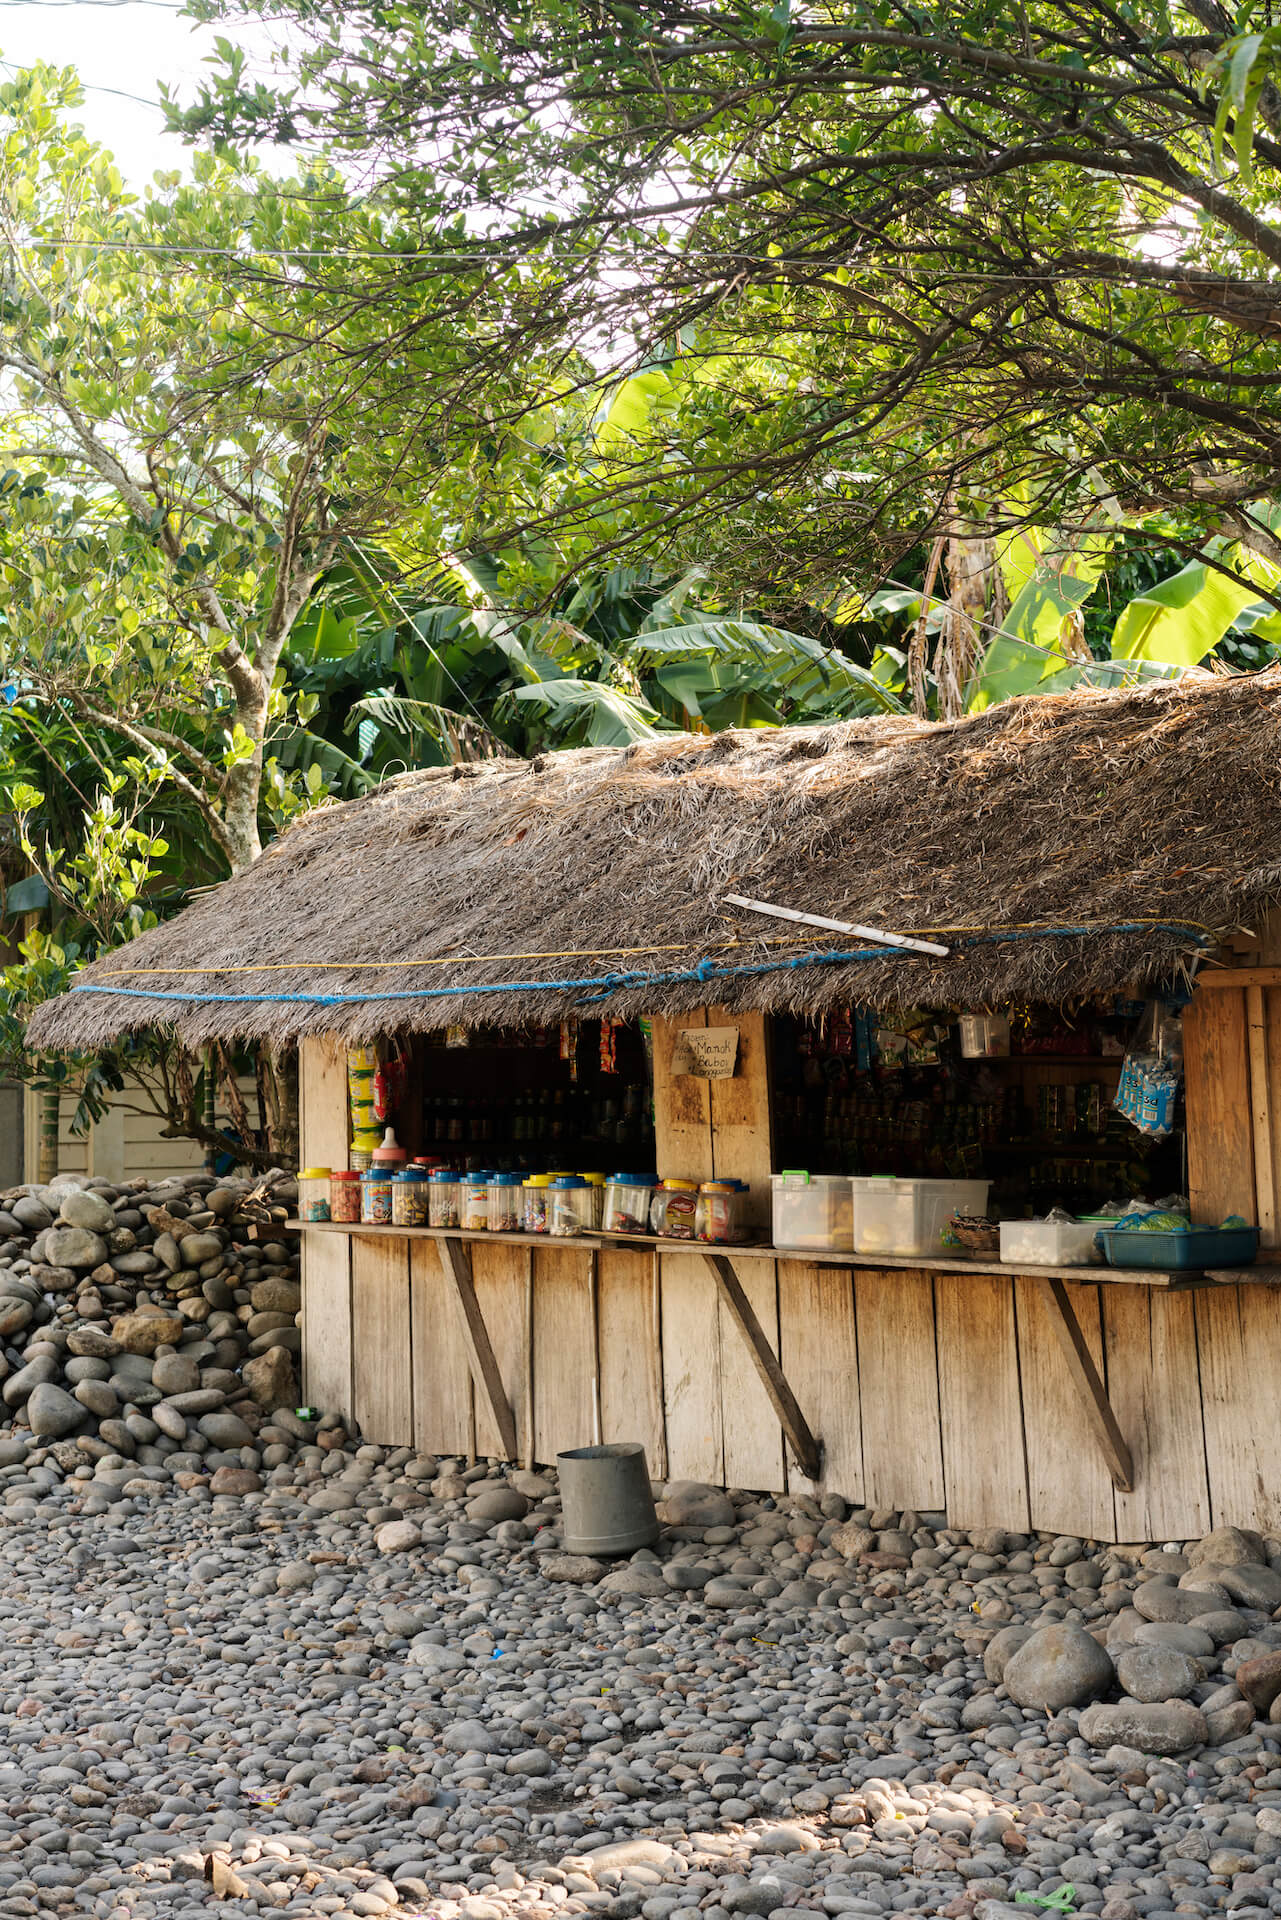 A local shack in Babuyan Group of Islands